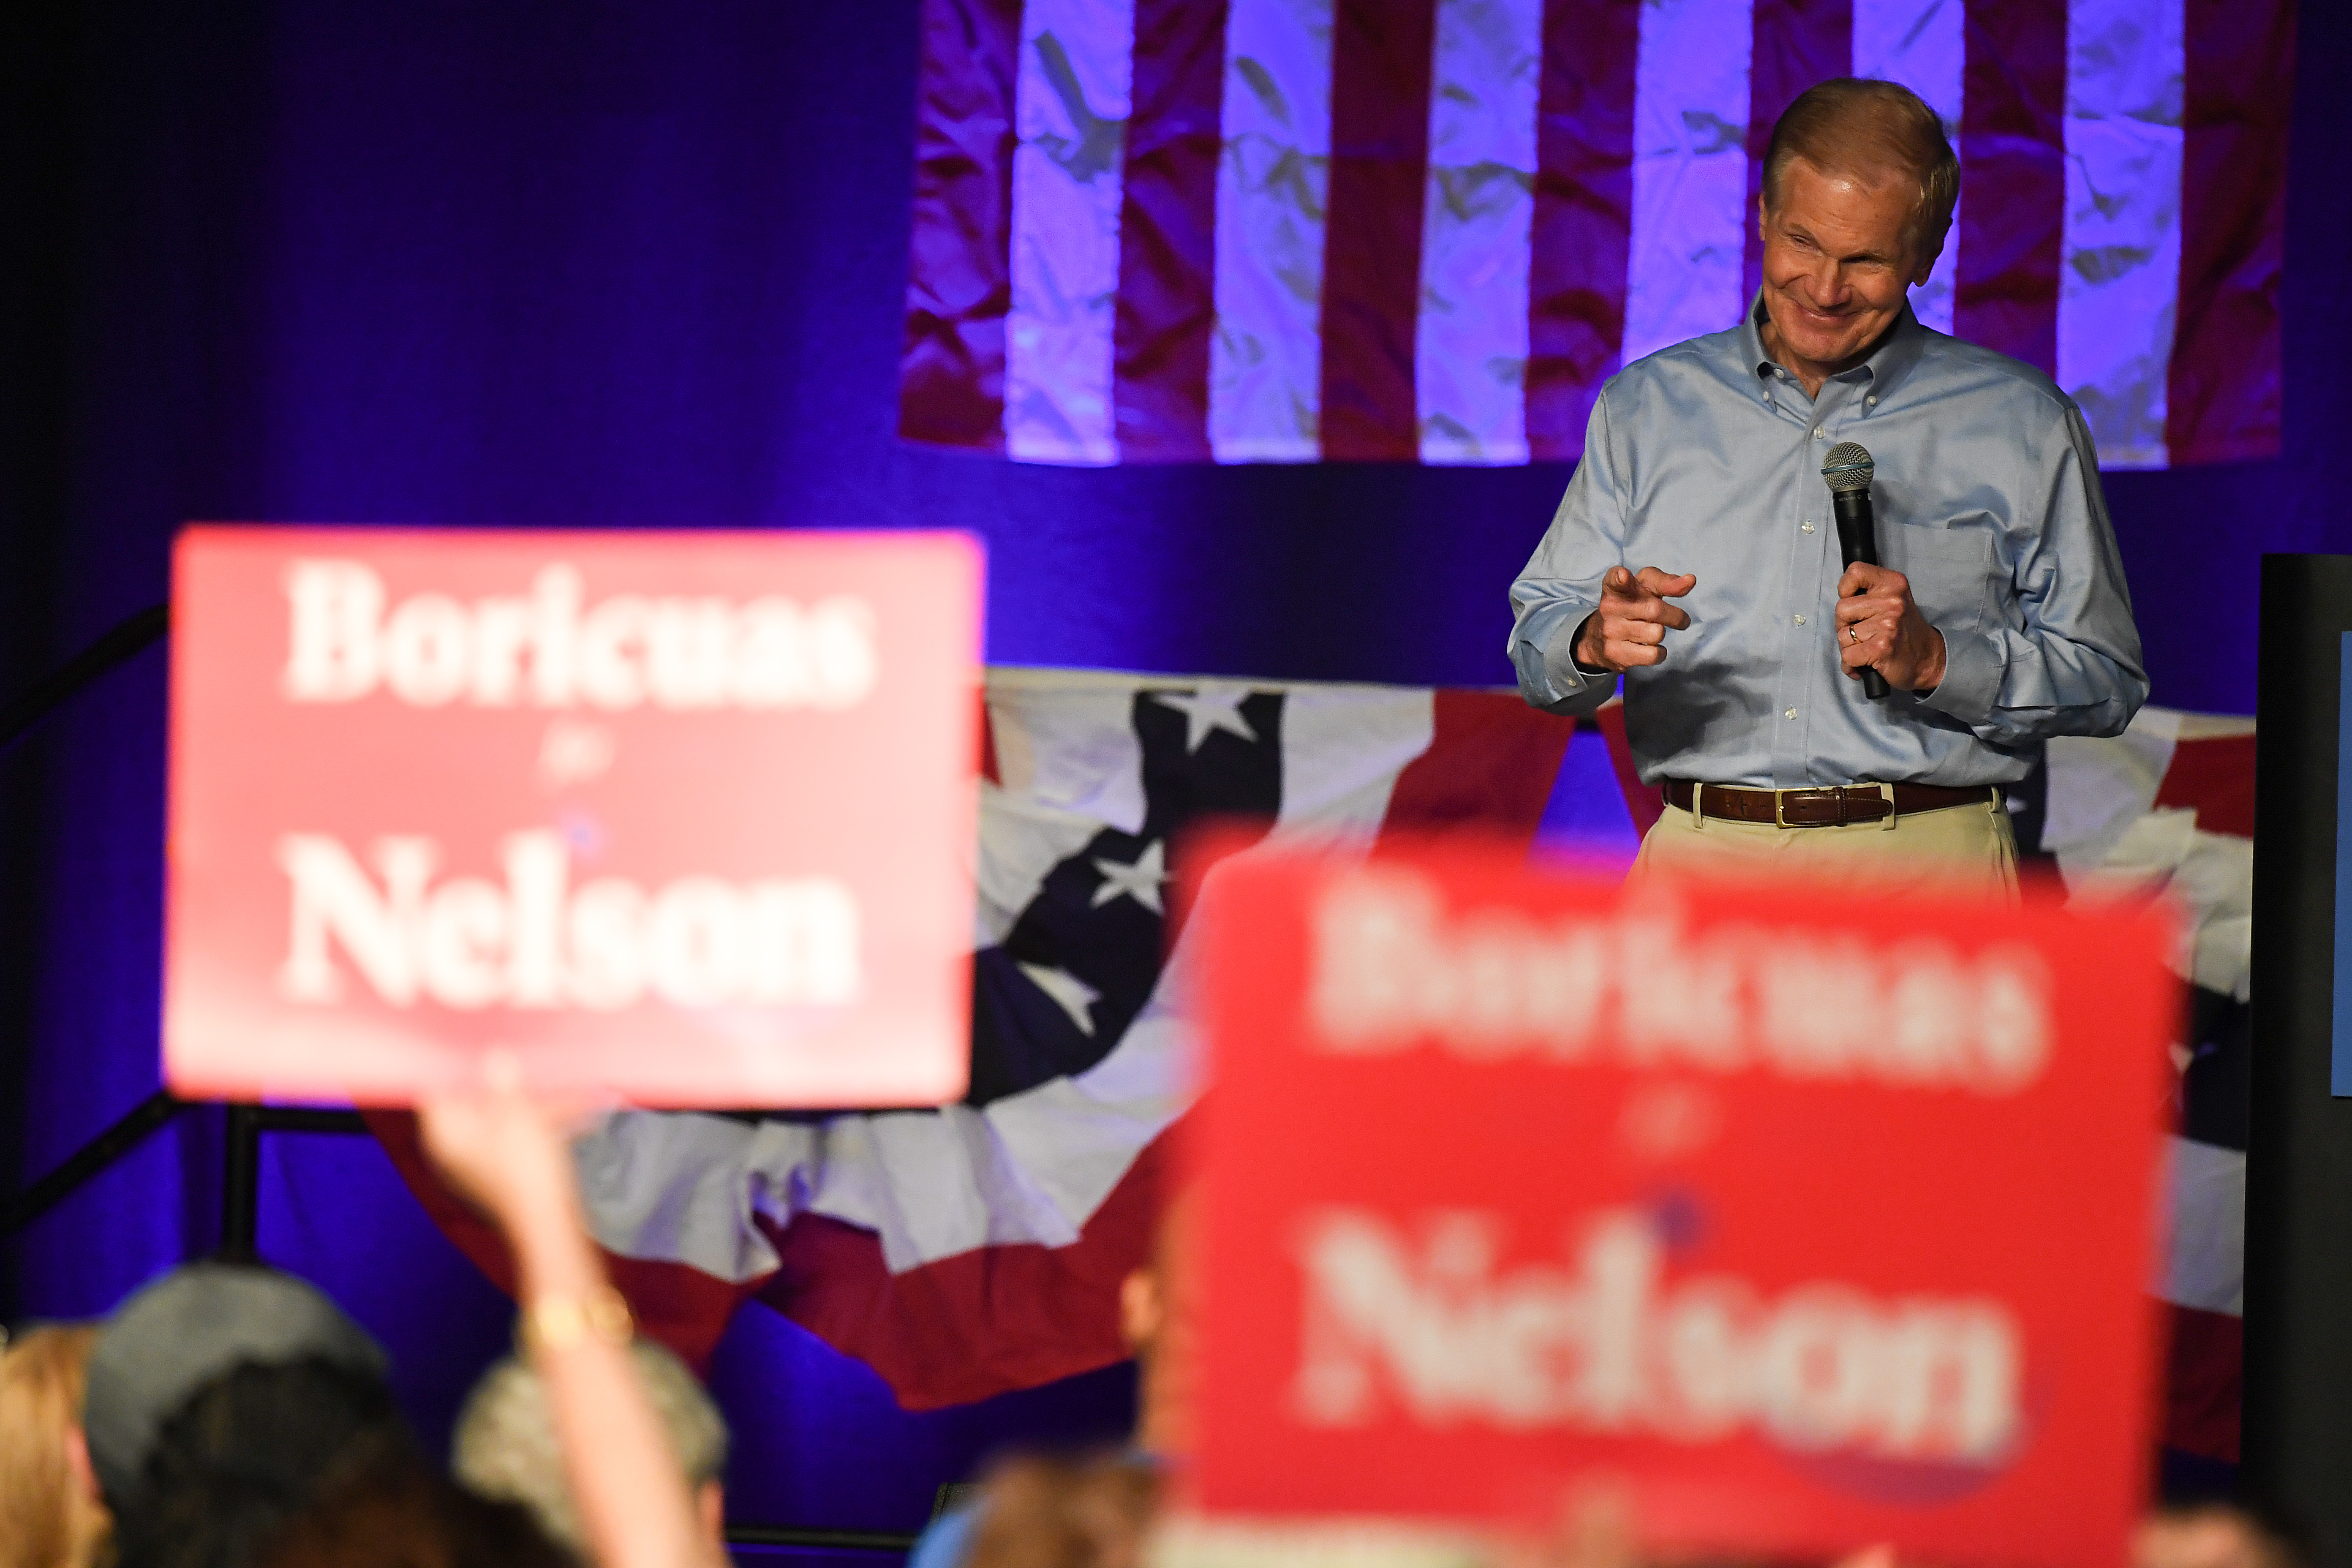 Senator Bill Nelson addresses the crowd during a campaign rally in support for Florida Democratic gubernatorial candidate Andrew Gillum at the CFE arena on November 3, 2018 in Orlando, Florida. (Jeff J Mitchell/Getty Images)